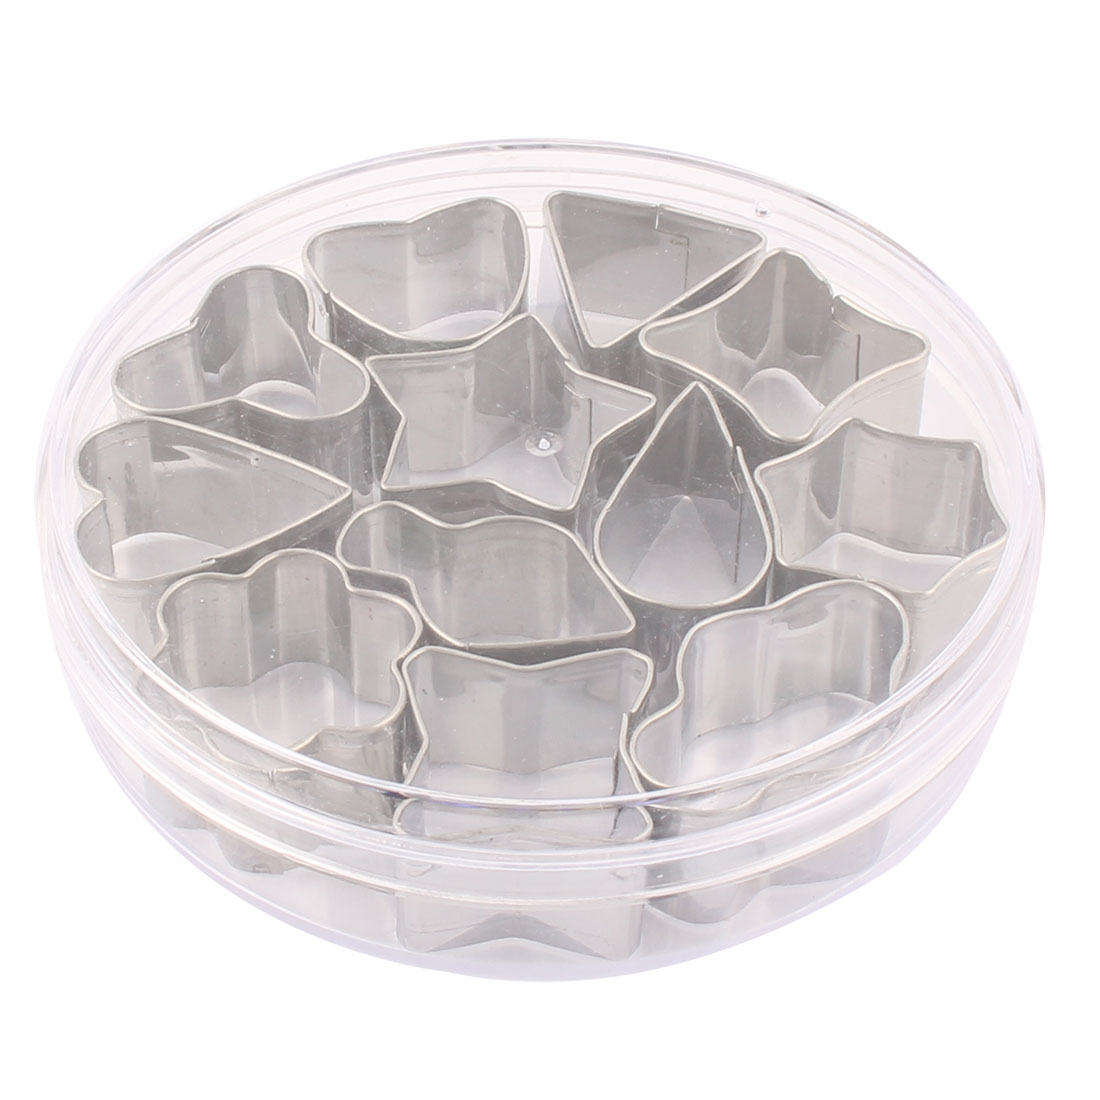 Home Kitchen Stainless Steel Geometric Shape Cake Cookie Cutter Mold 12 in 1